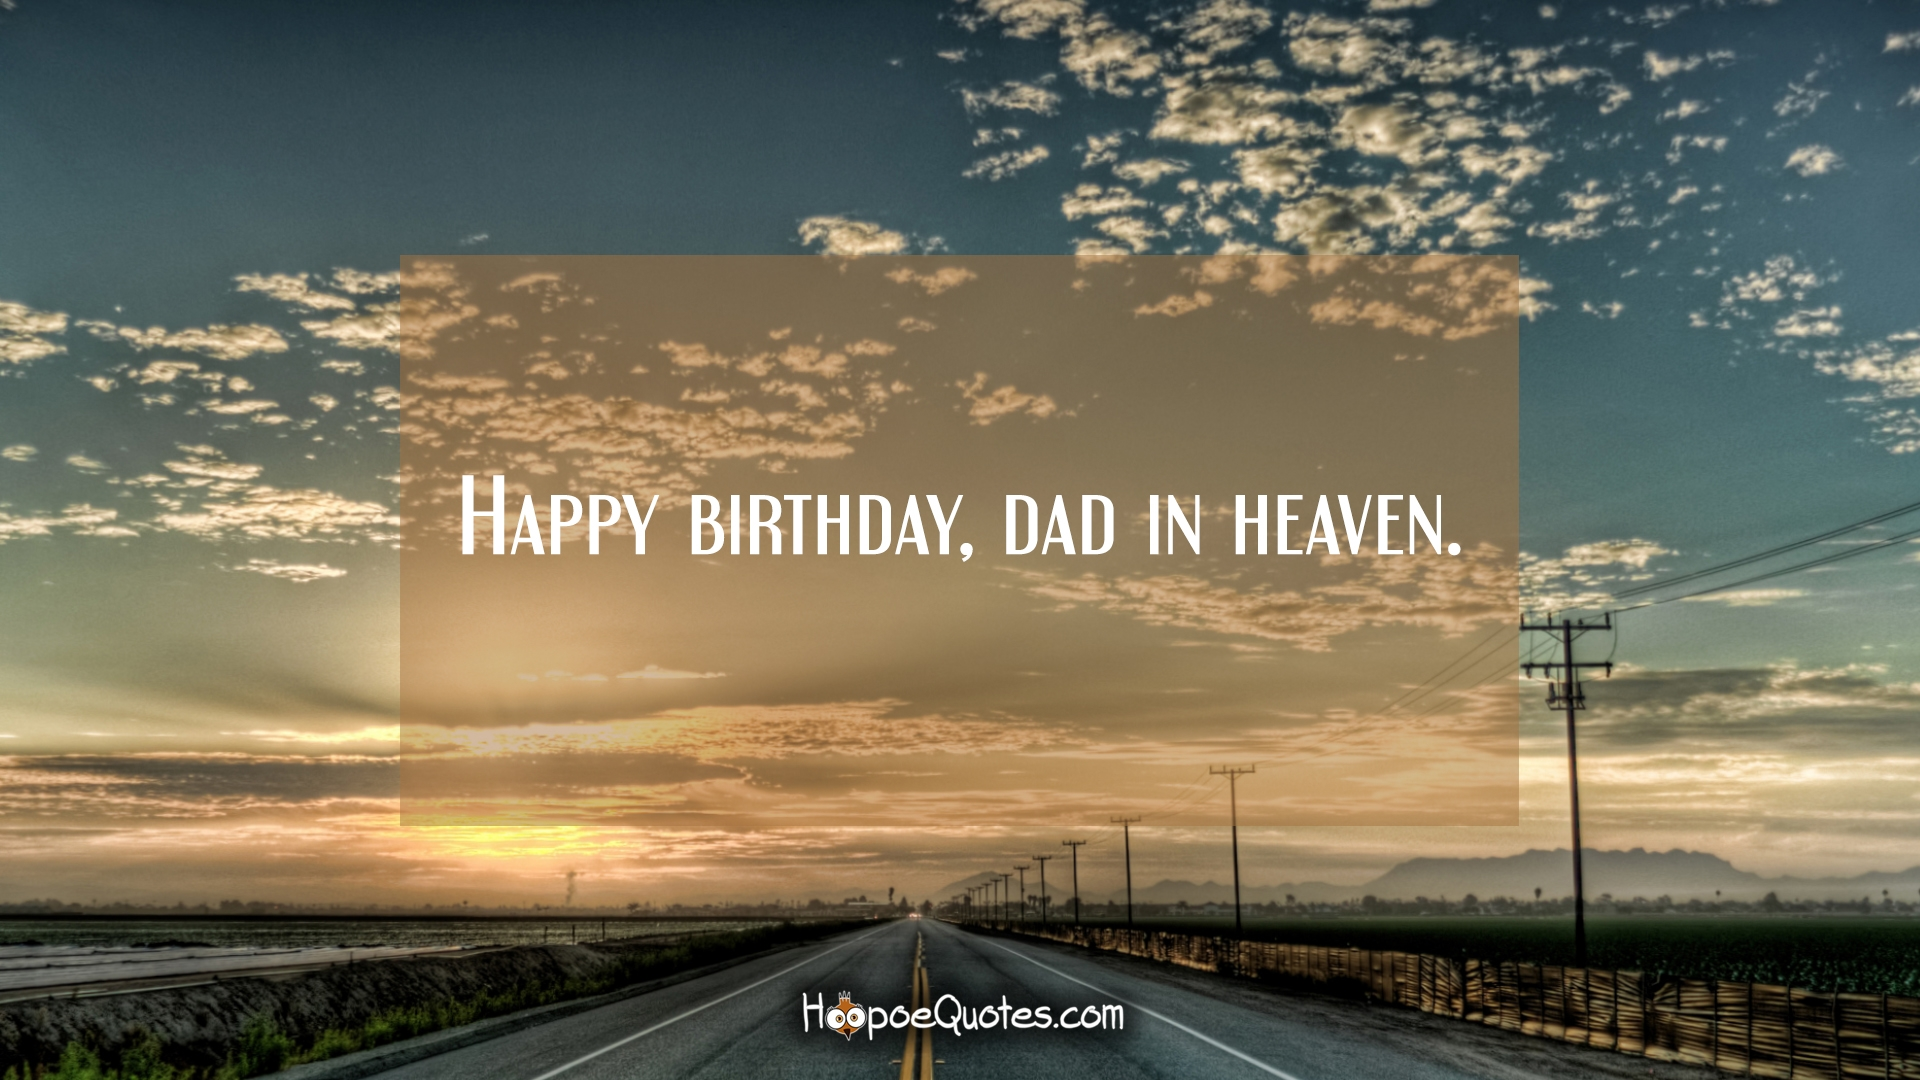 happy birthday dad in heaven images ; 1299f384c2dcc6bd92340e9555fb43f2